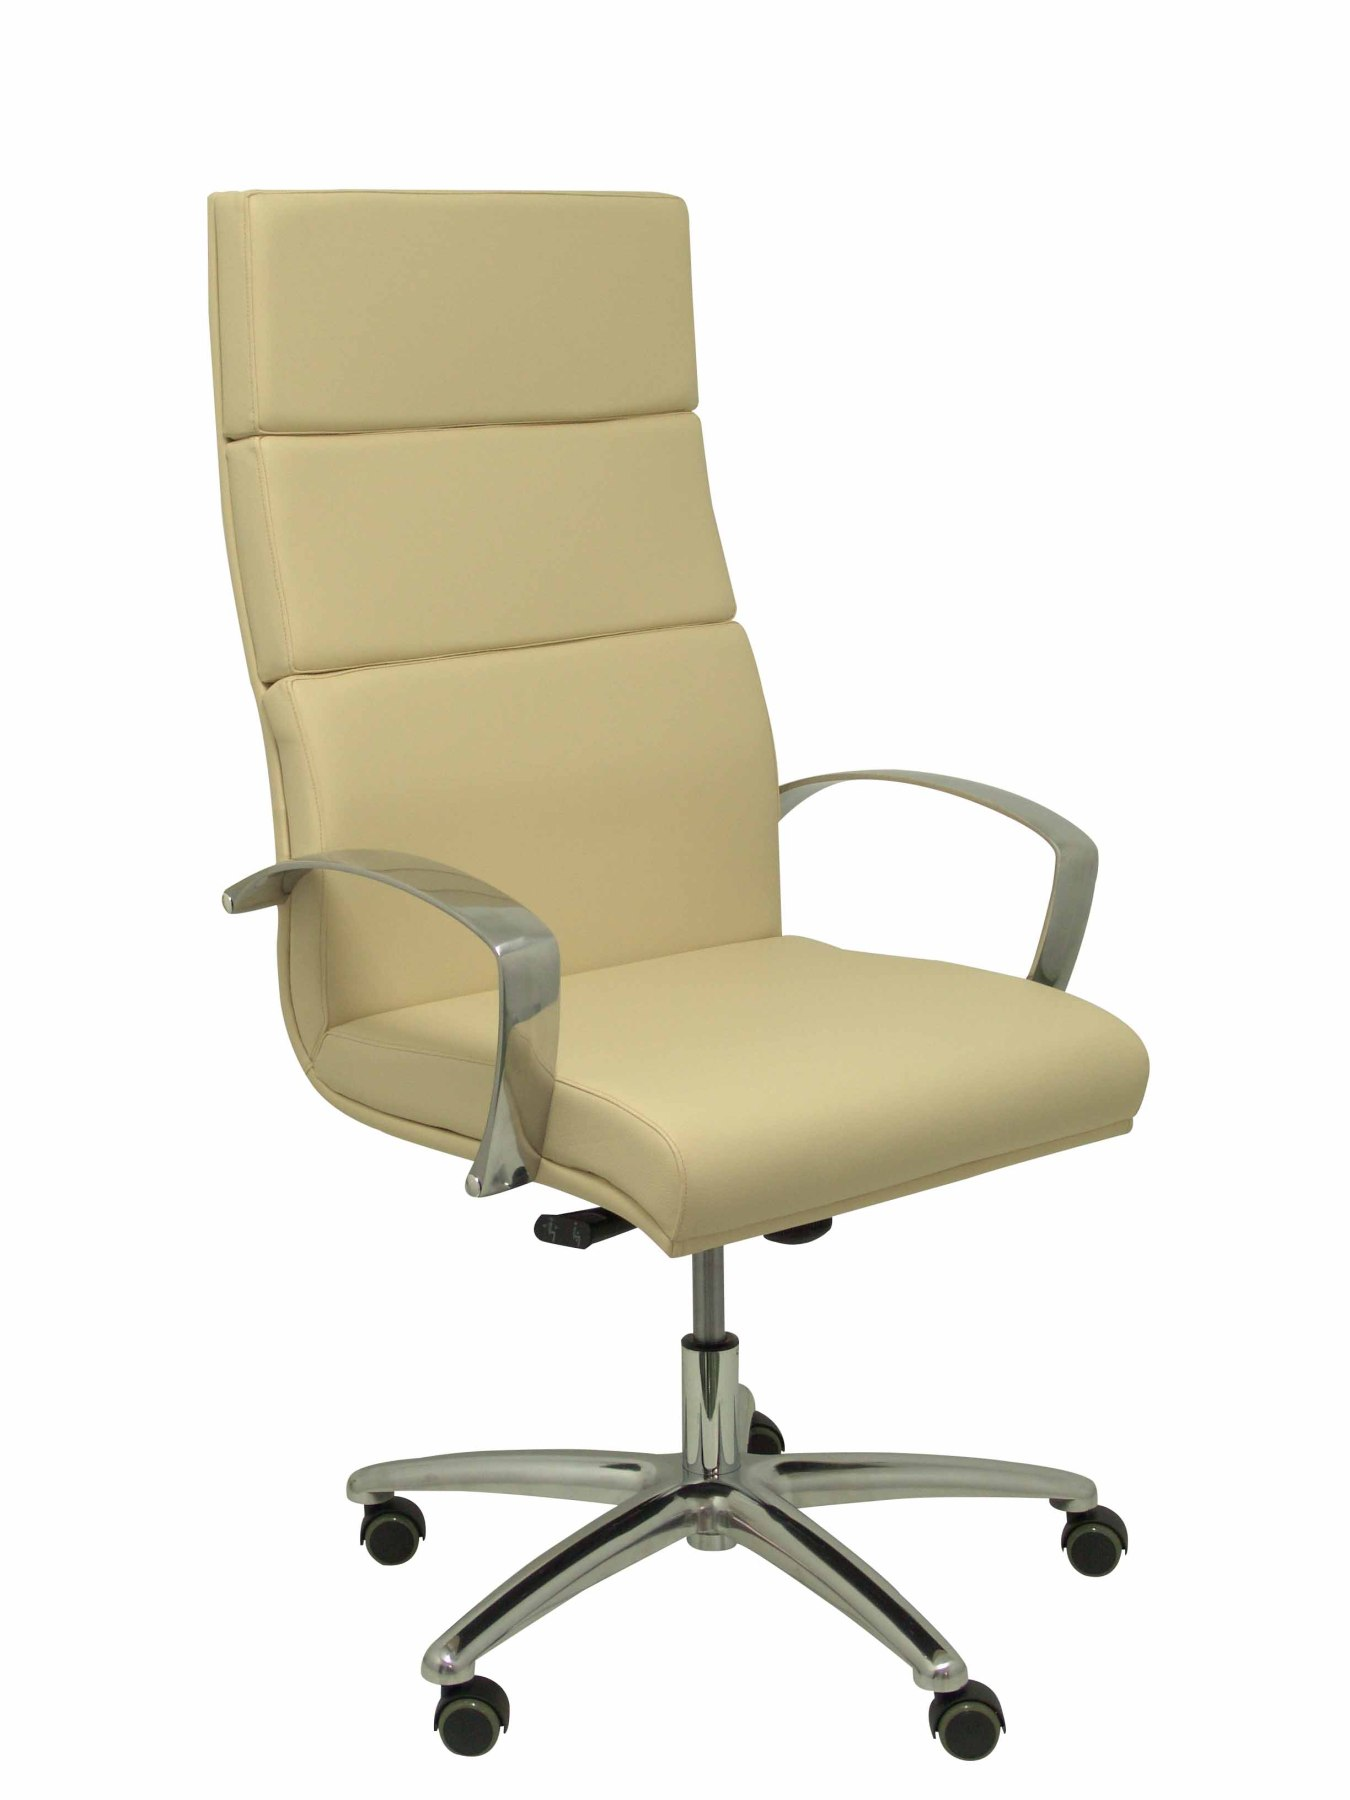 Office Armchair Ergonomic Address With Mechanism Rocker Multi Position And Height Adjustable-Seat And Resp